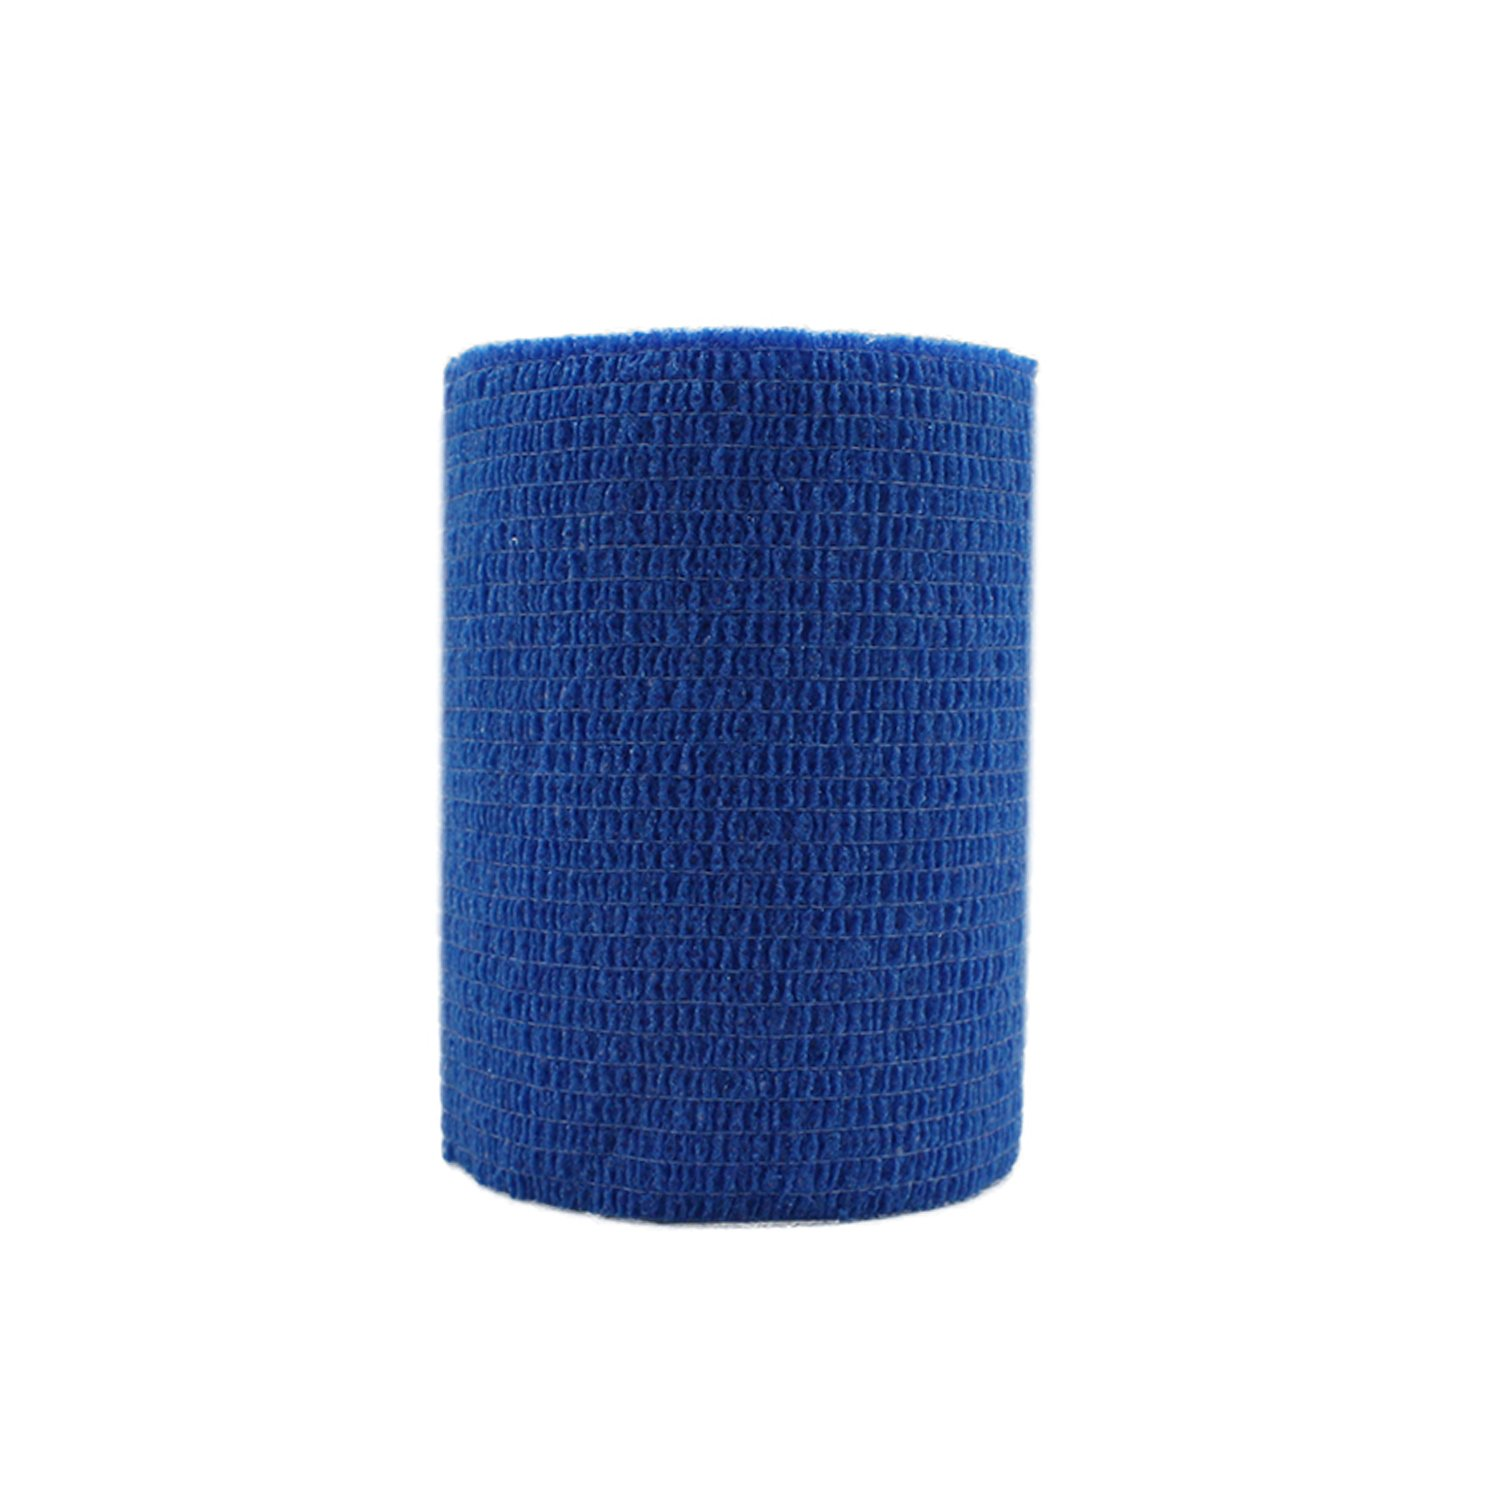 COMOmed Self Adherent Cohesive Bandage Latex FDA Approved 3''x5 Yards First Aid Ace Bandages Stretch Sport Athletic Wrap Vet Tape for Wrist Ankle Sprain and Swelling,Blue(6 Rolls)